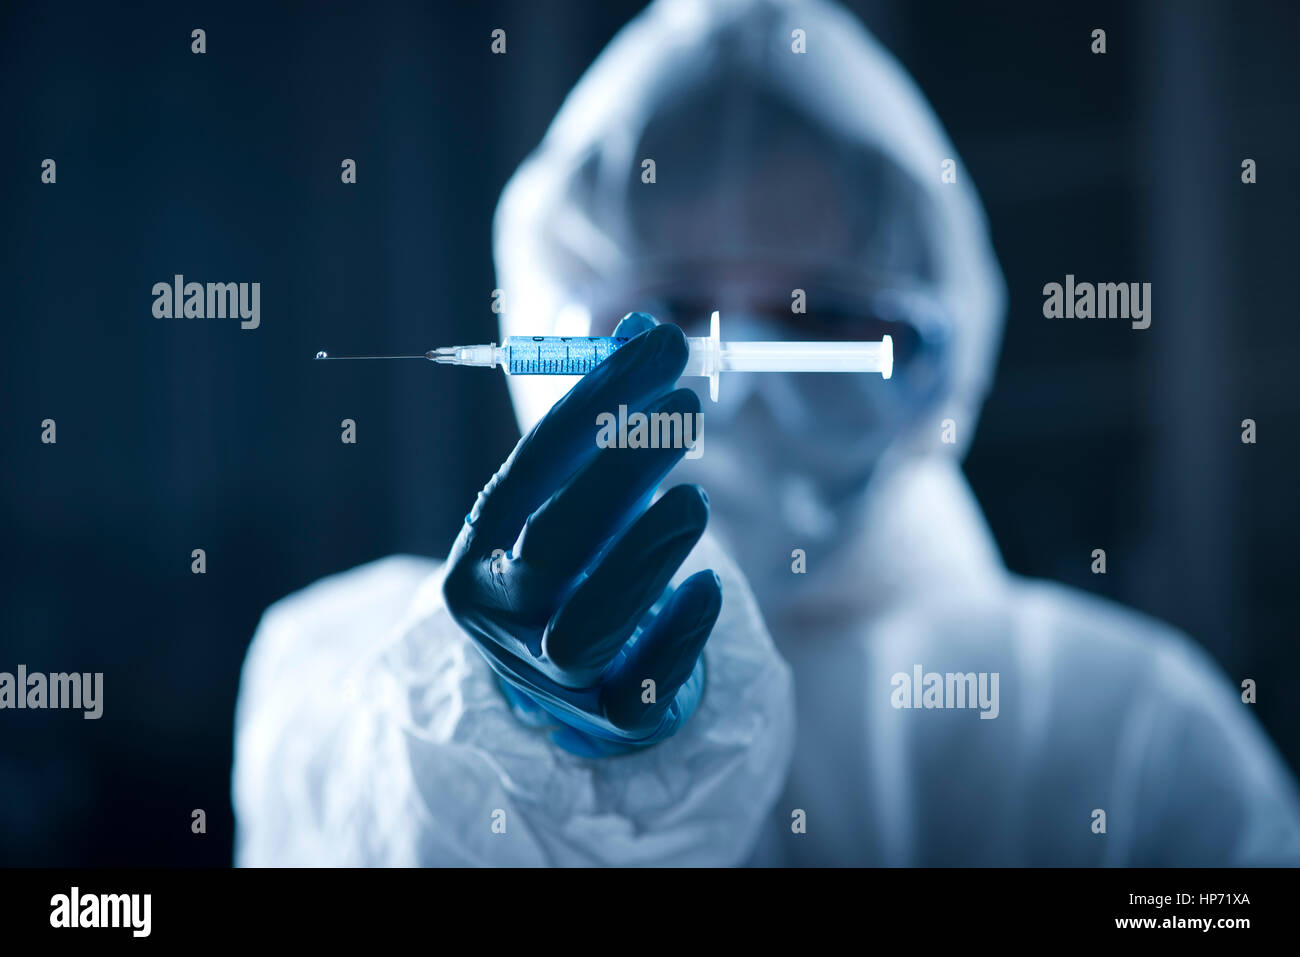 Researcher in hazmat protective suit preparing a syringe for injection. - Stock Image